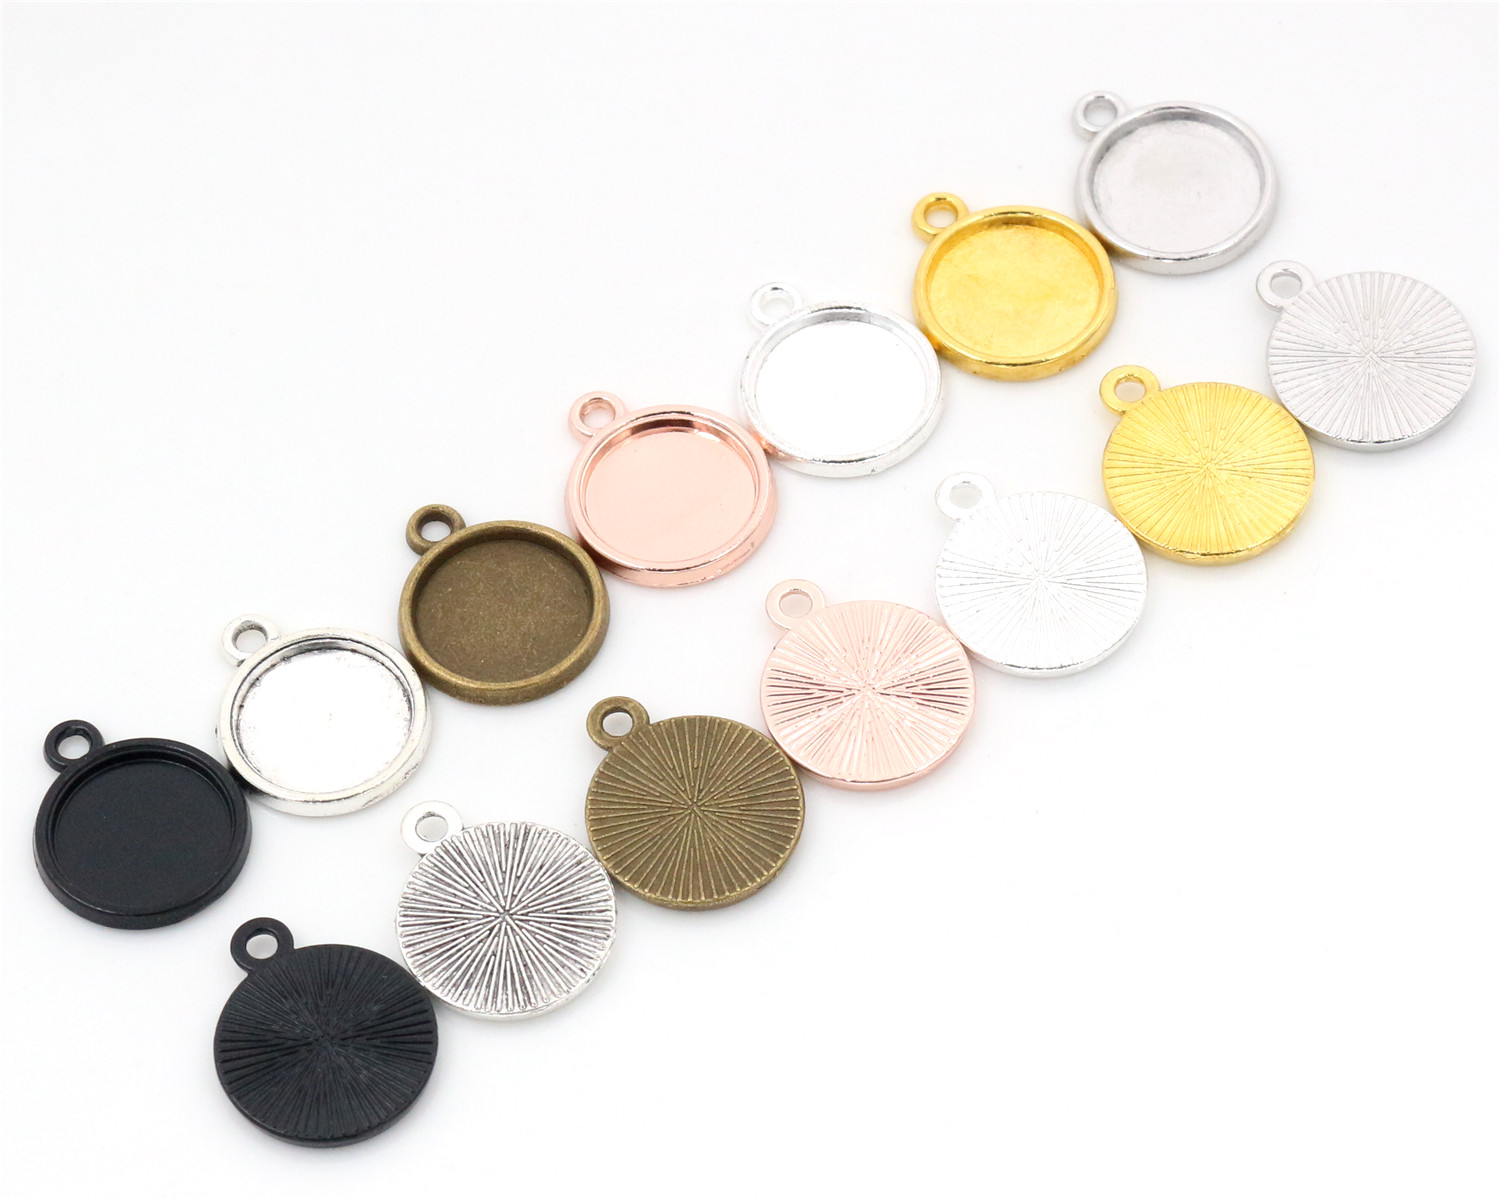 20pcs 12mm Inner Size Classic 7 Colors Plated One Sided Single Hanging Simple Style Cabochon Base Setting Charms Pendant